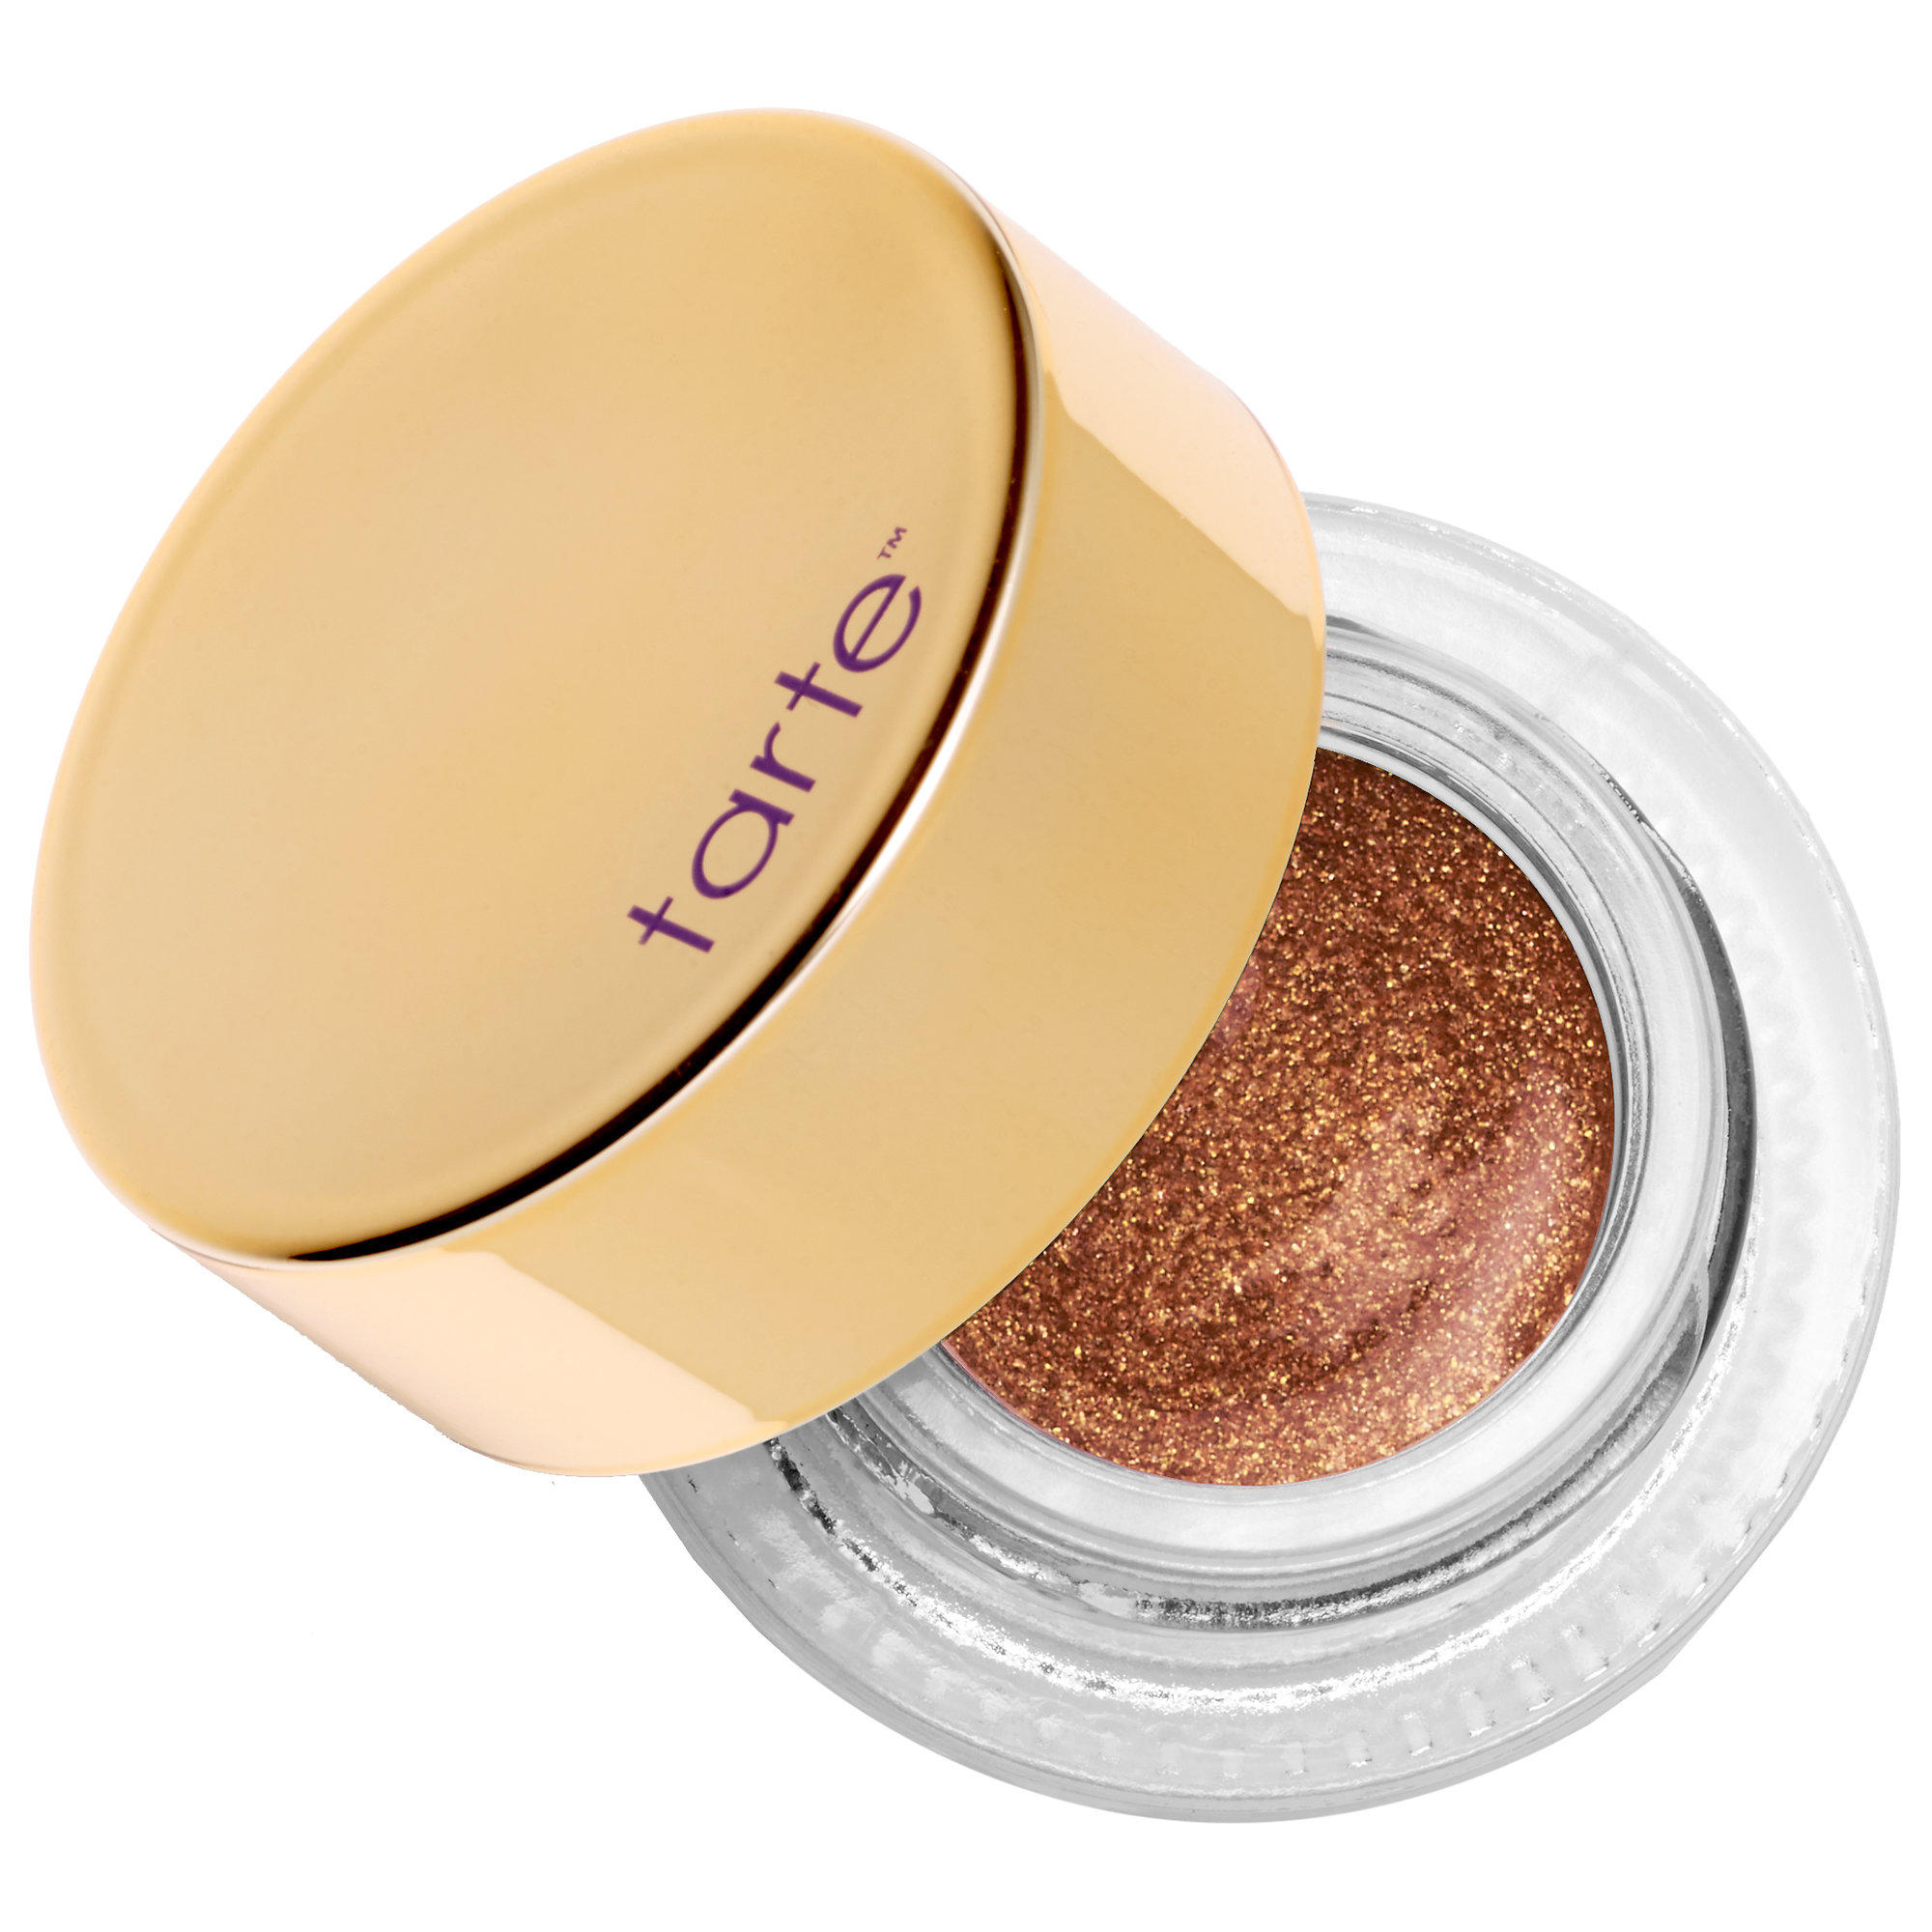 Tarte Clay Pot Waterproof Liner Rose Gold